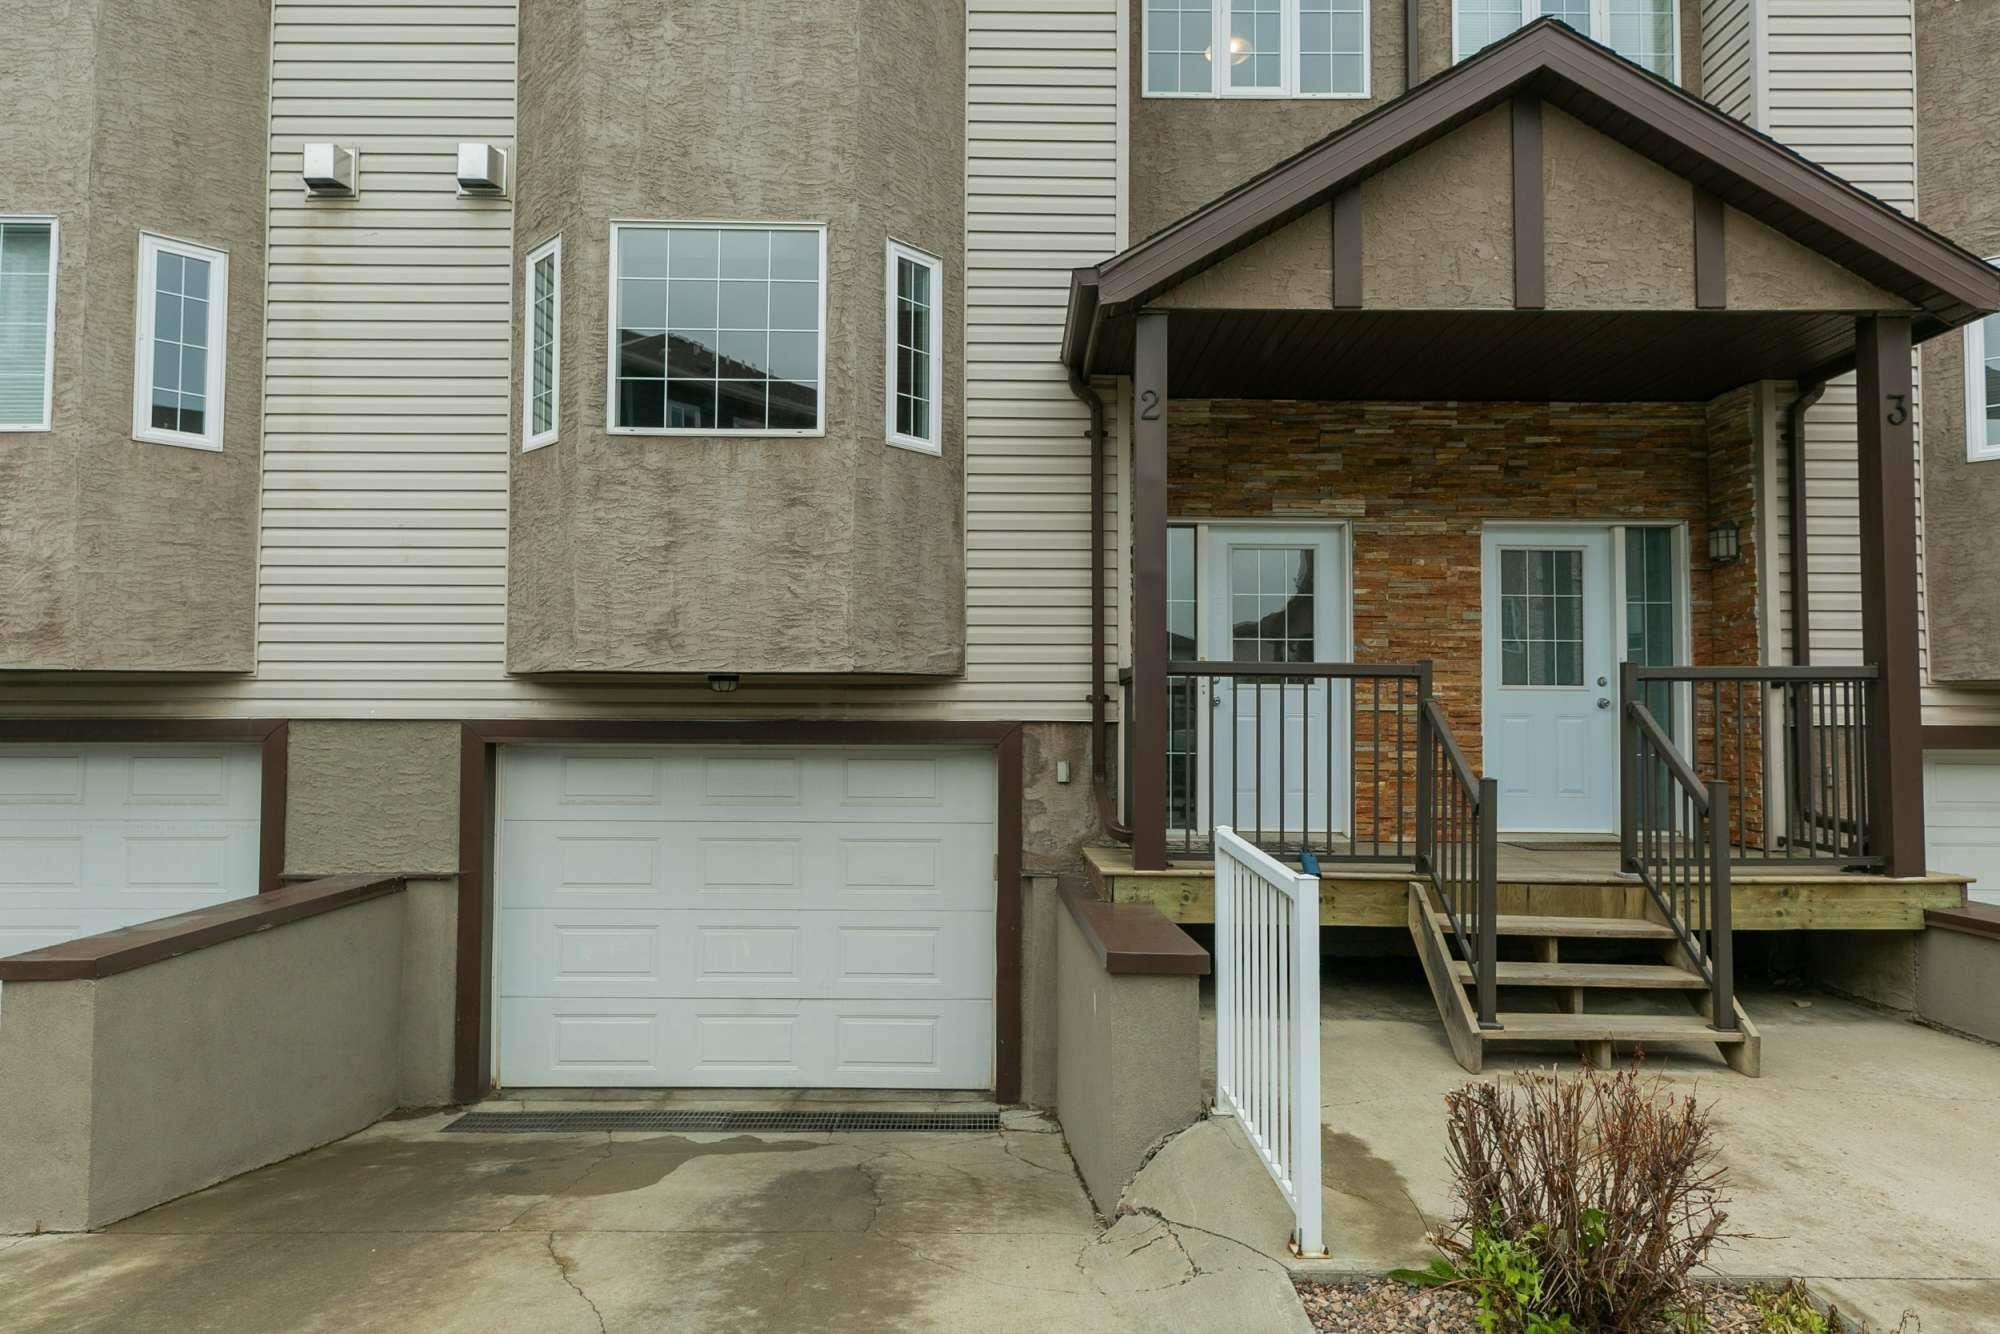 Main Photo: 2 17839 99 Street NW in Edmonton: Zone 27 Townhouse for sale : MLS®# E4256116